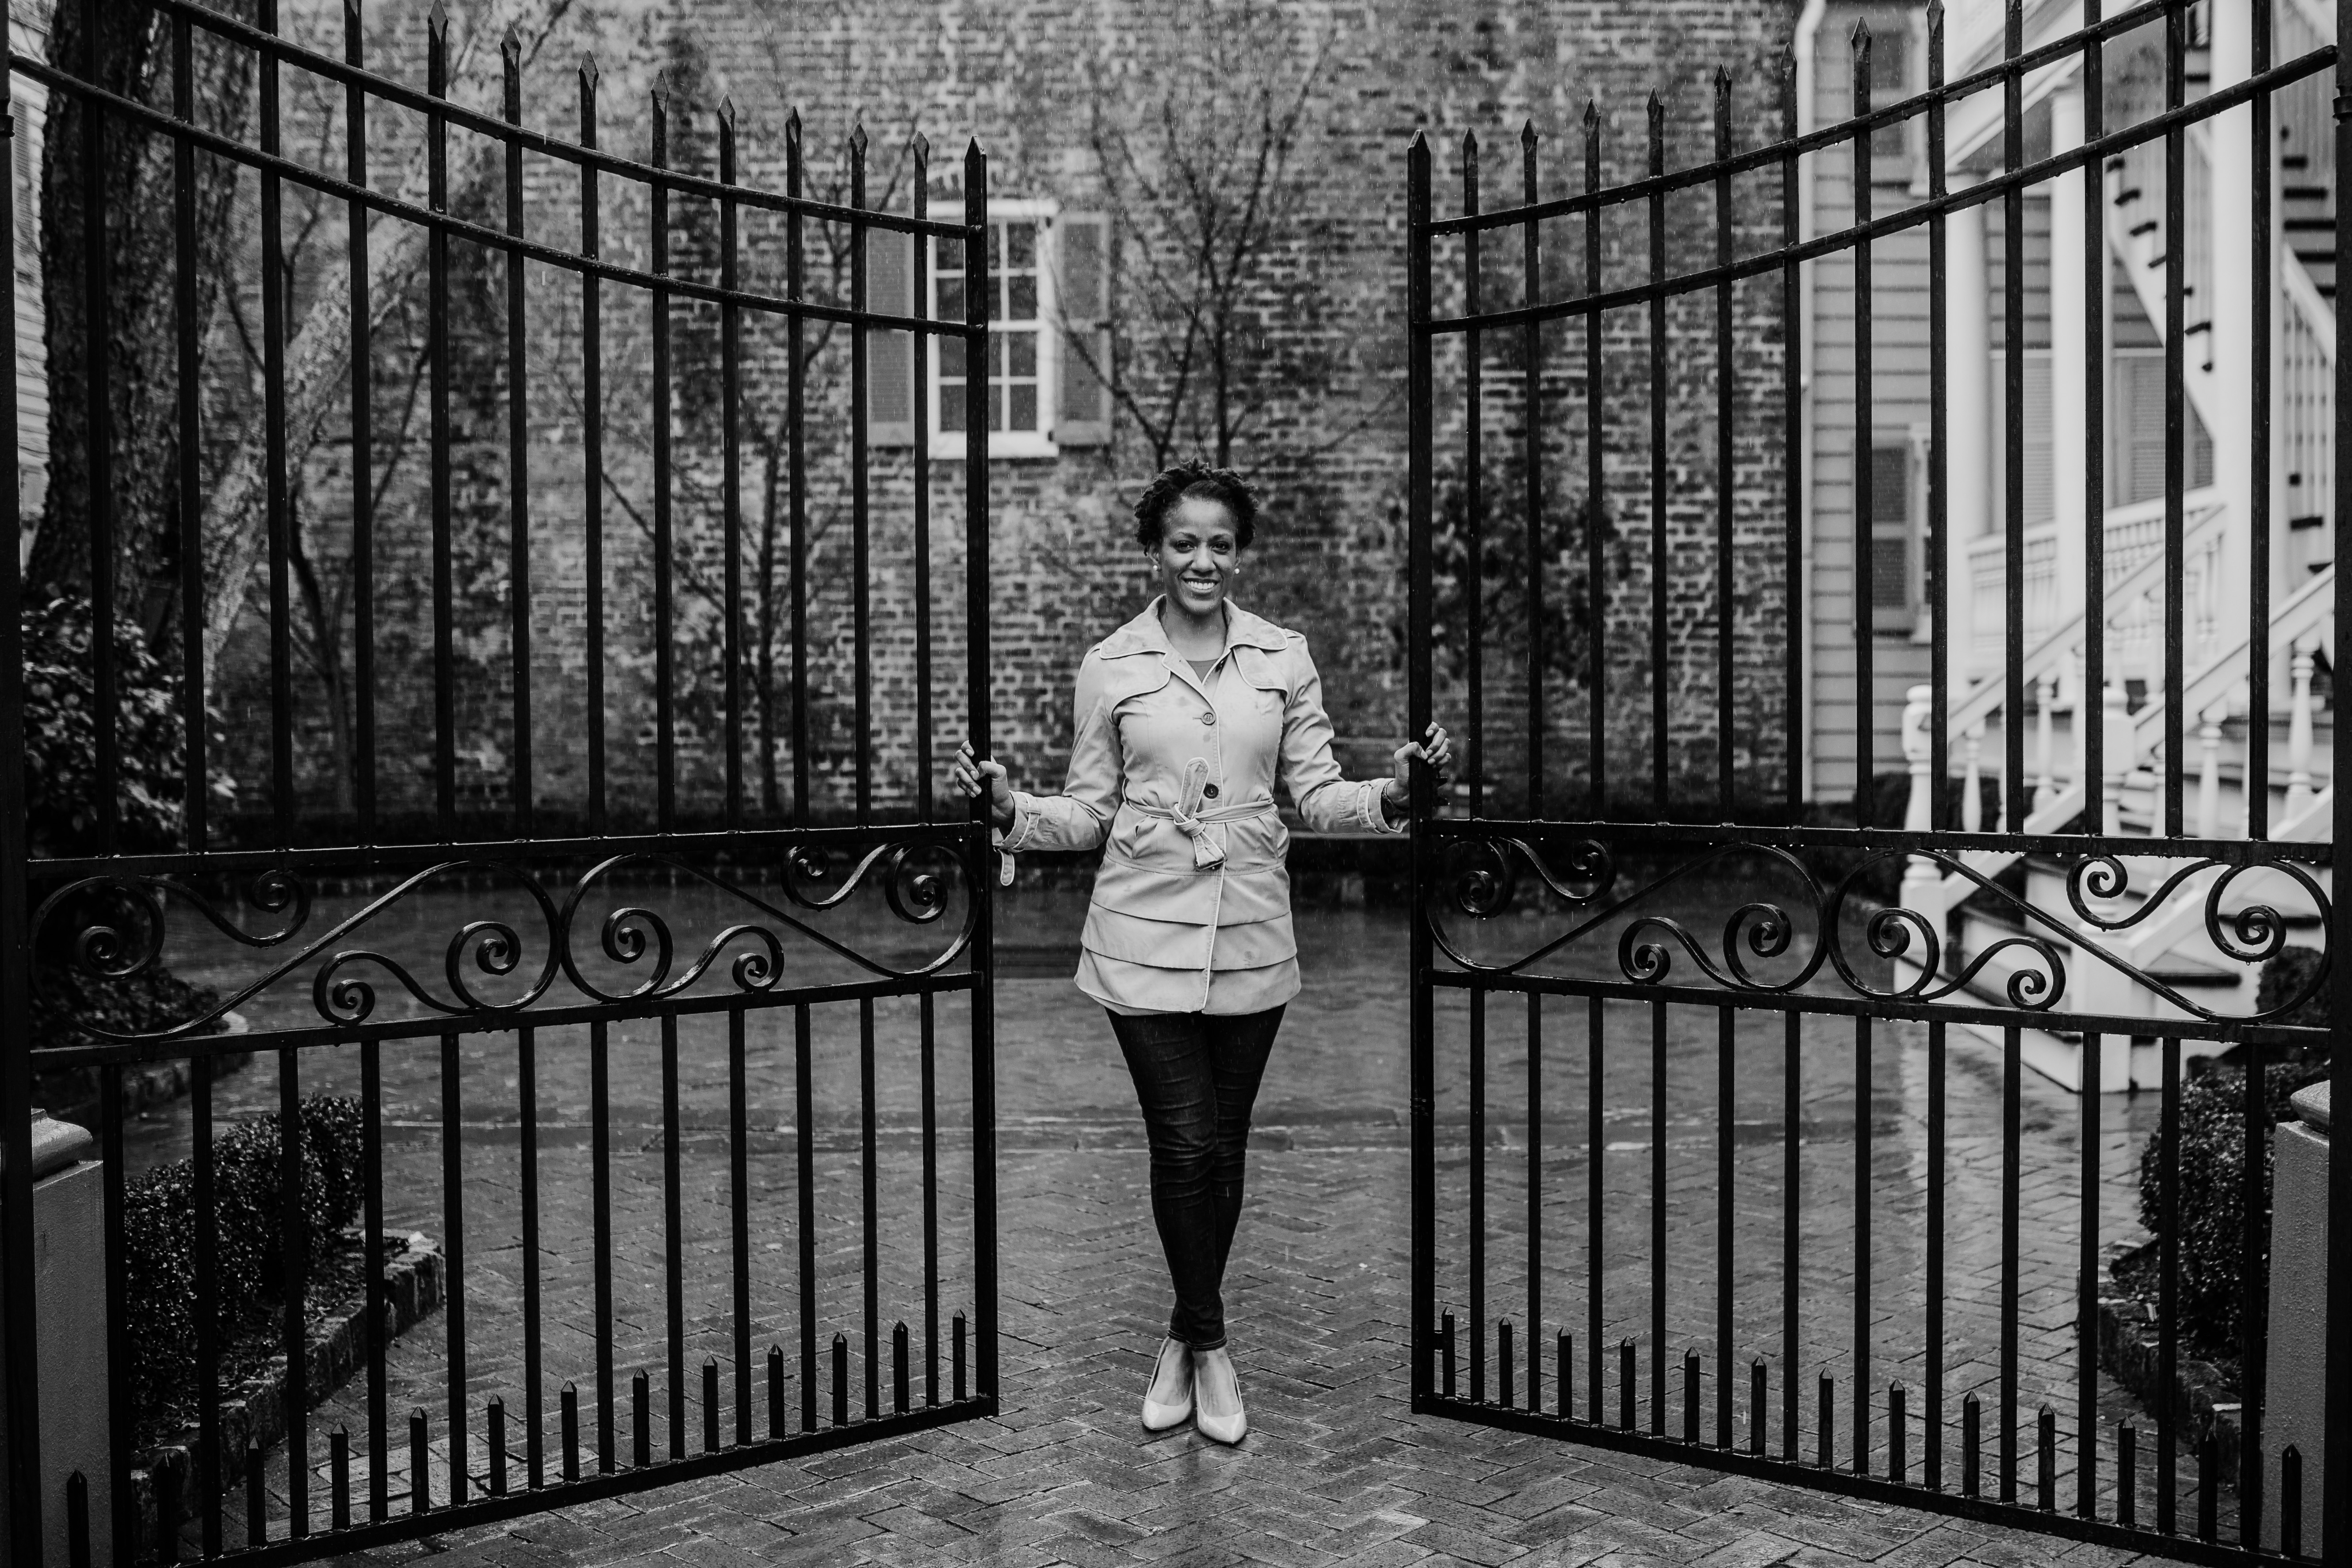 Charneice stands between two iron gates and a stately home, smartly dressed, welcoming visitors.